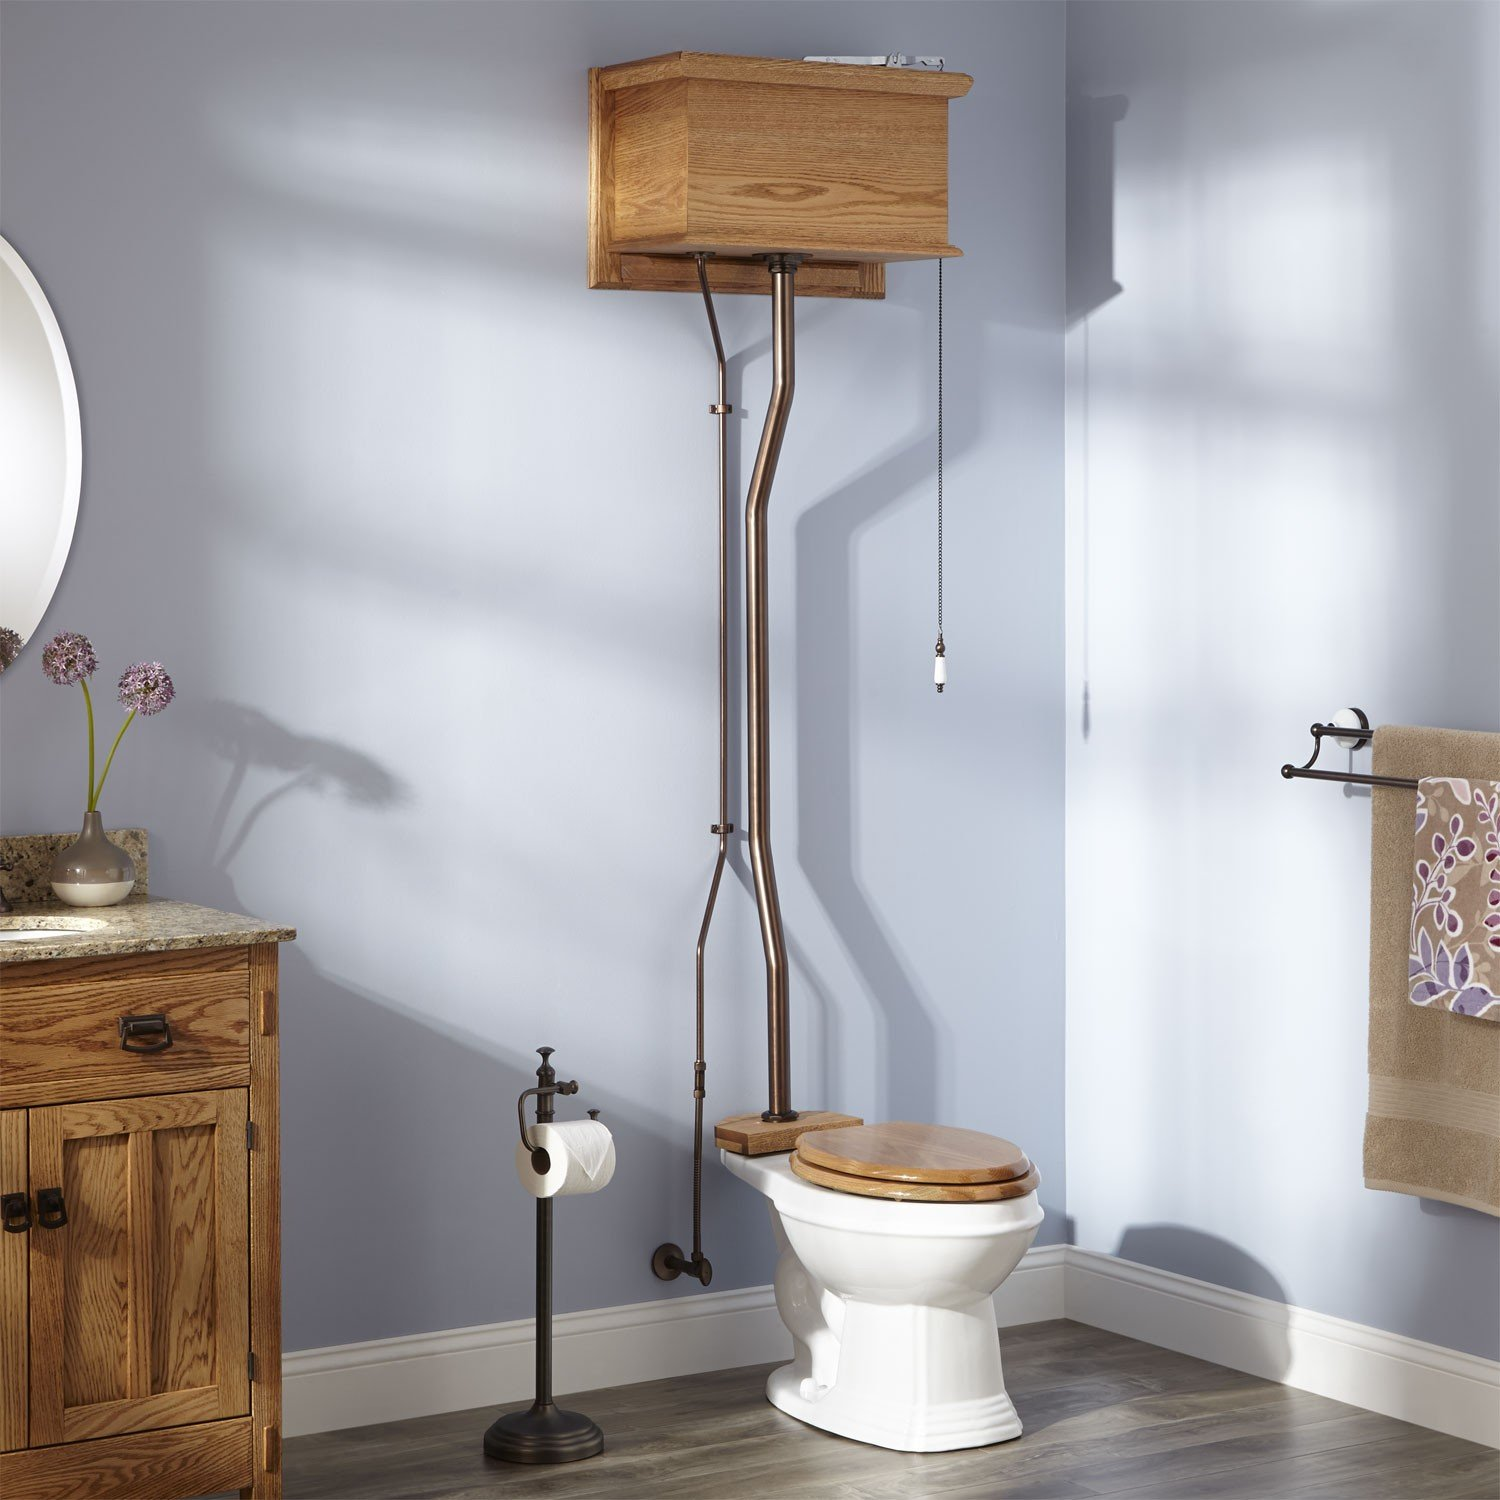 Naiture Golden Oak High Tank Pull CHAIN Water Closet With Elongated Bowl in Oil Rubbed Bronze Finish by SH